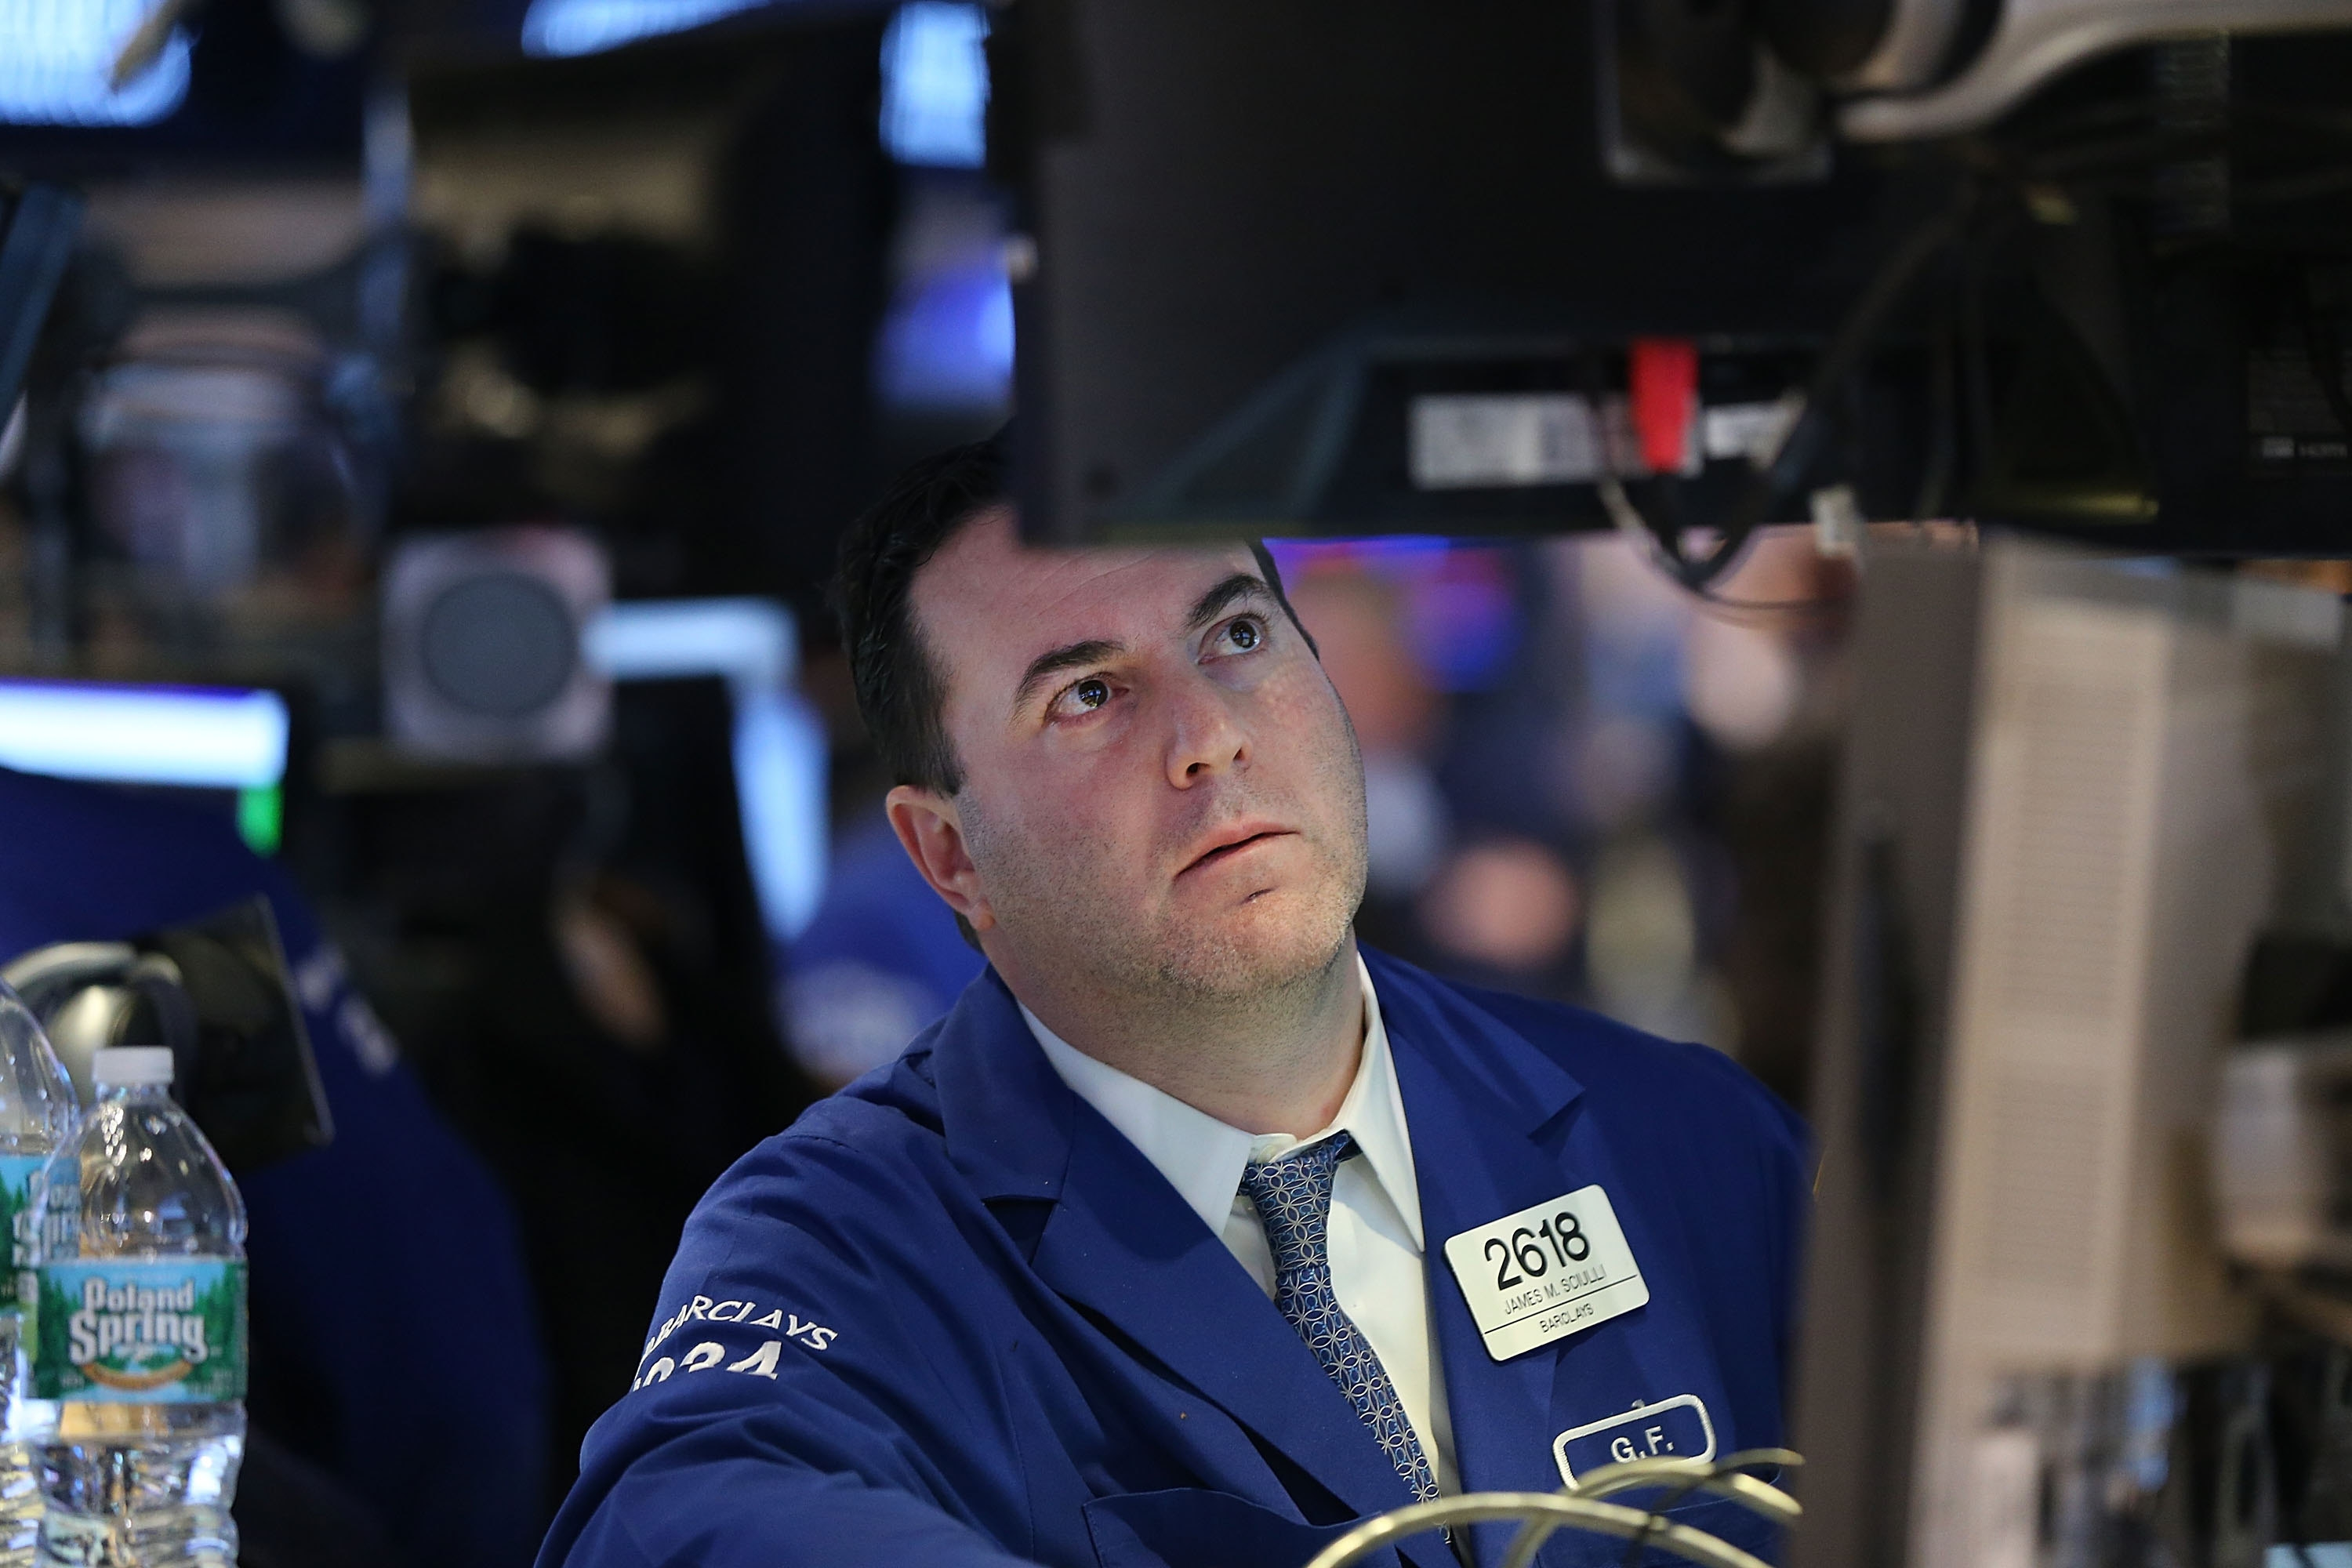 Traders work on the floor of the New York Stock Exchange in New York City. Stocks fell again on Wednesday as news of oil's continuing slide and concerns about the global economy rattled markets.